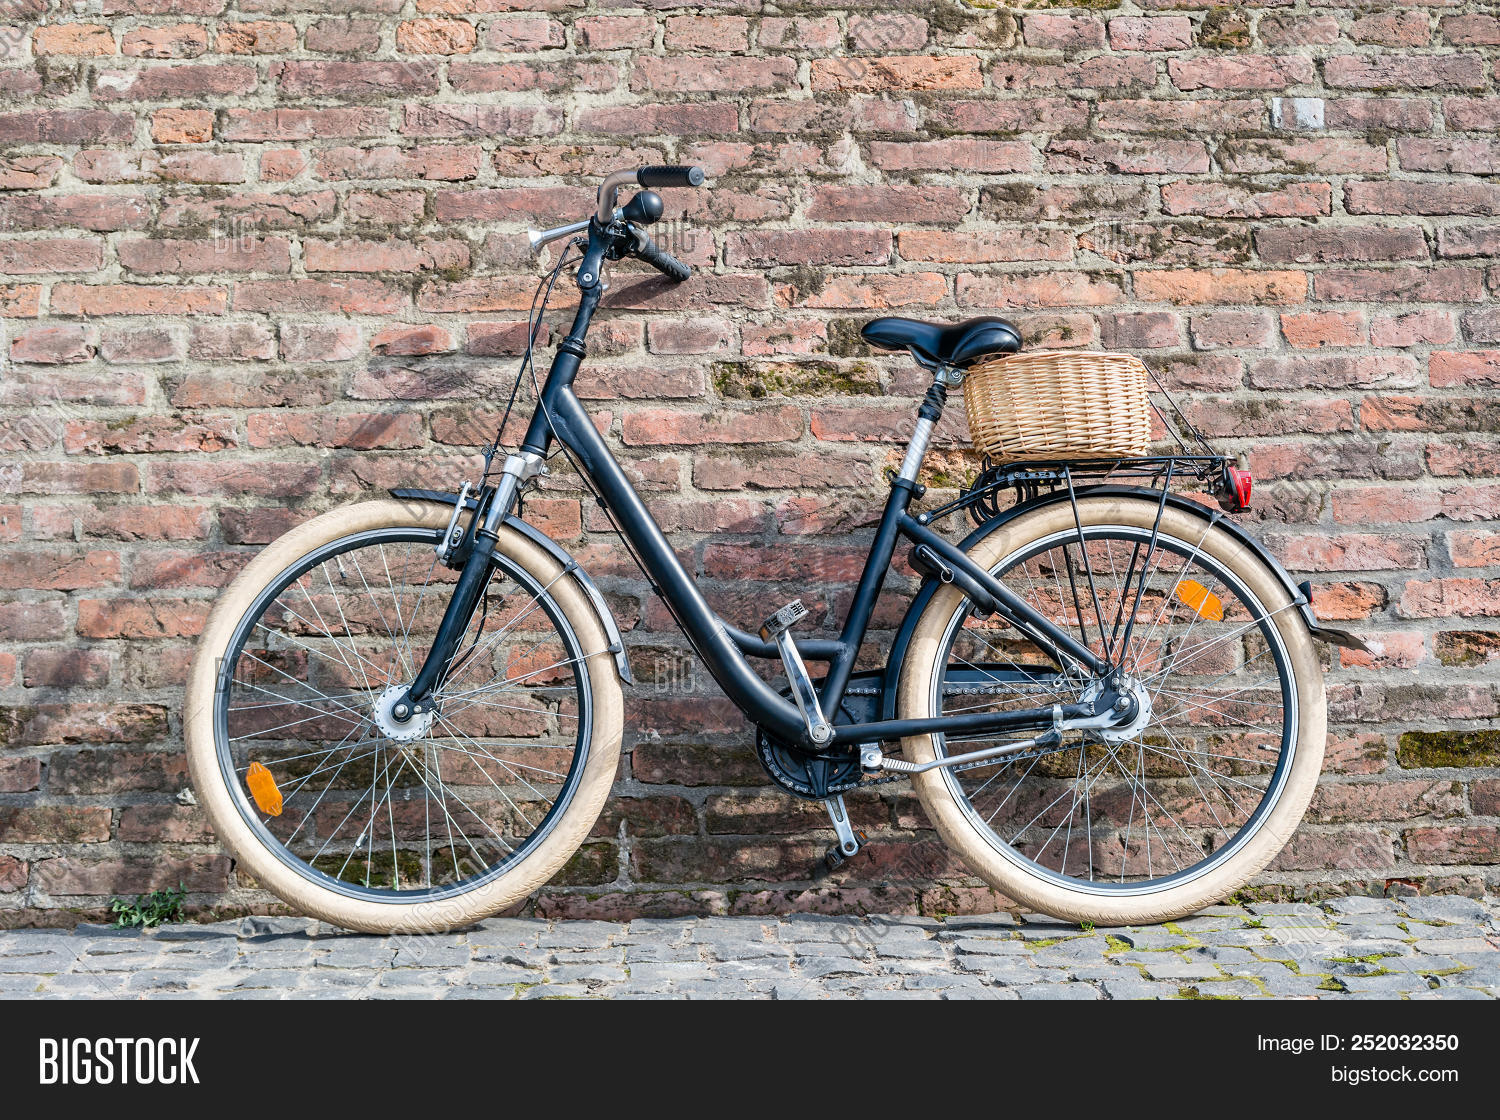 Black Retro Vintage Image & Photo (Free Trial) | Bigstock